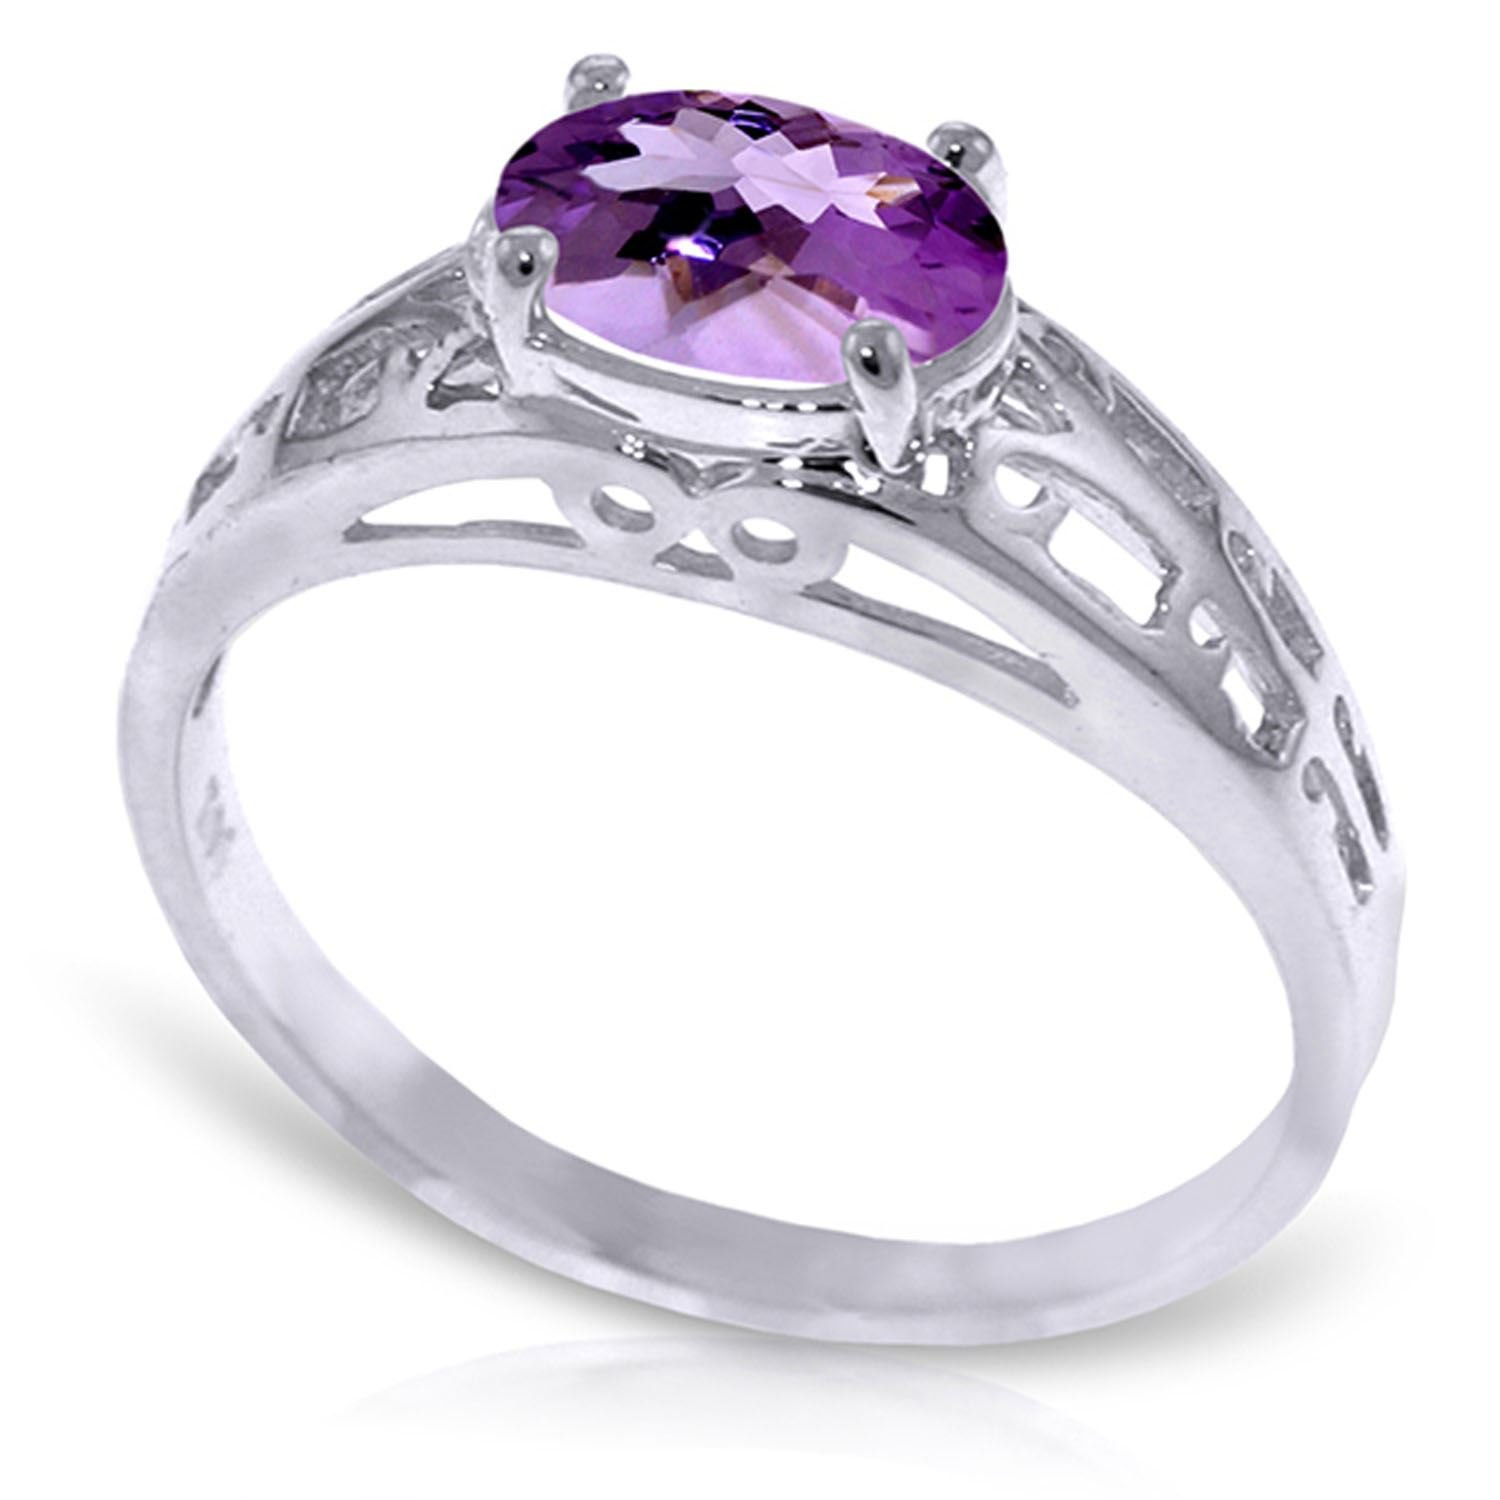 ALARRI 1.15 Carat 14K Solid White Gold Filigree Ring Natural Purple Amethyst With Ring Size 6.5